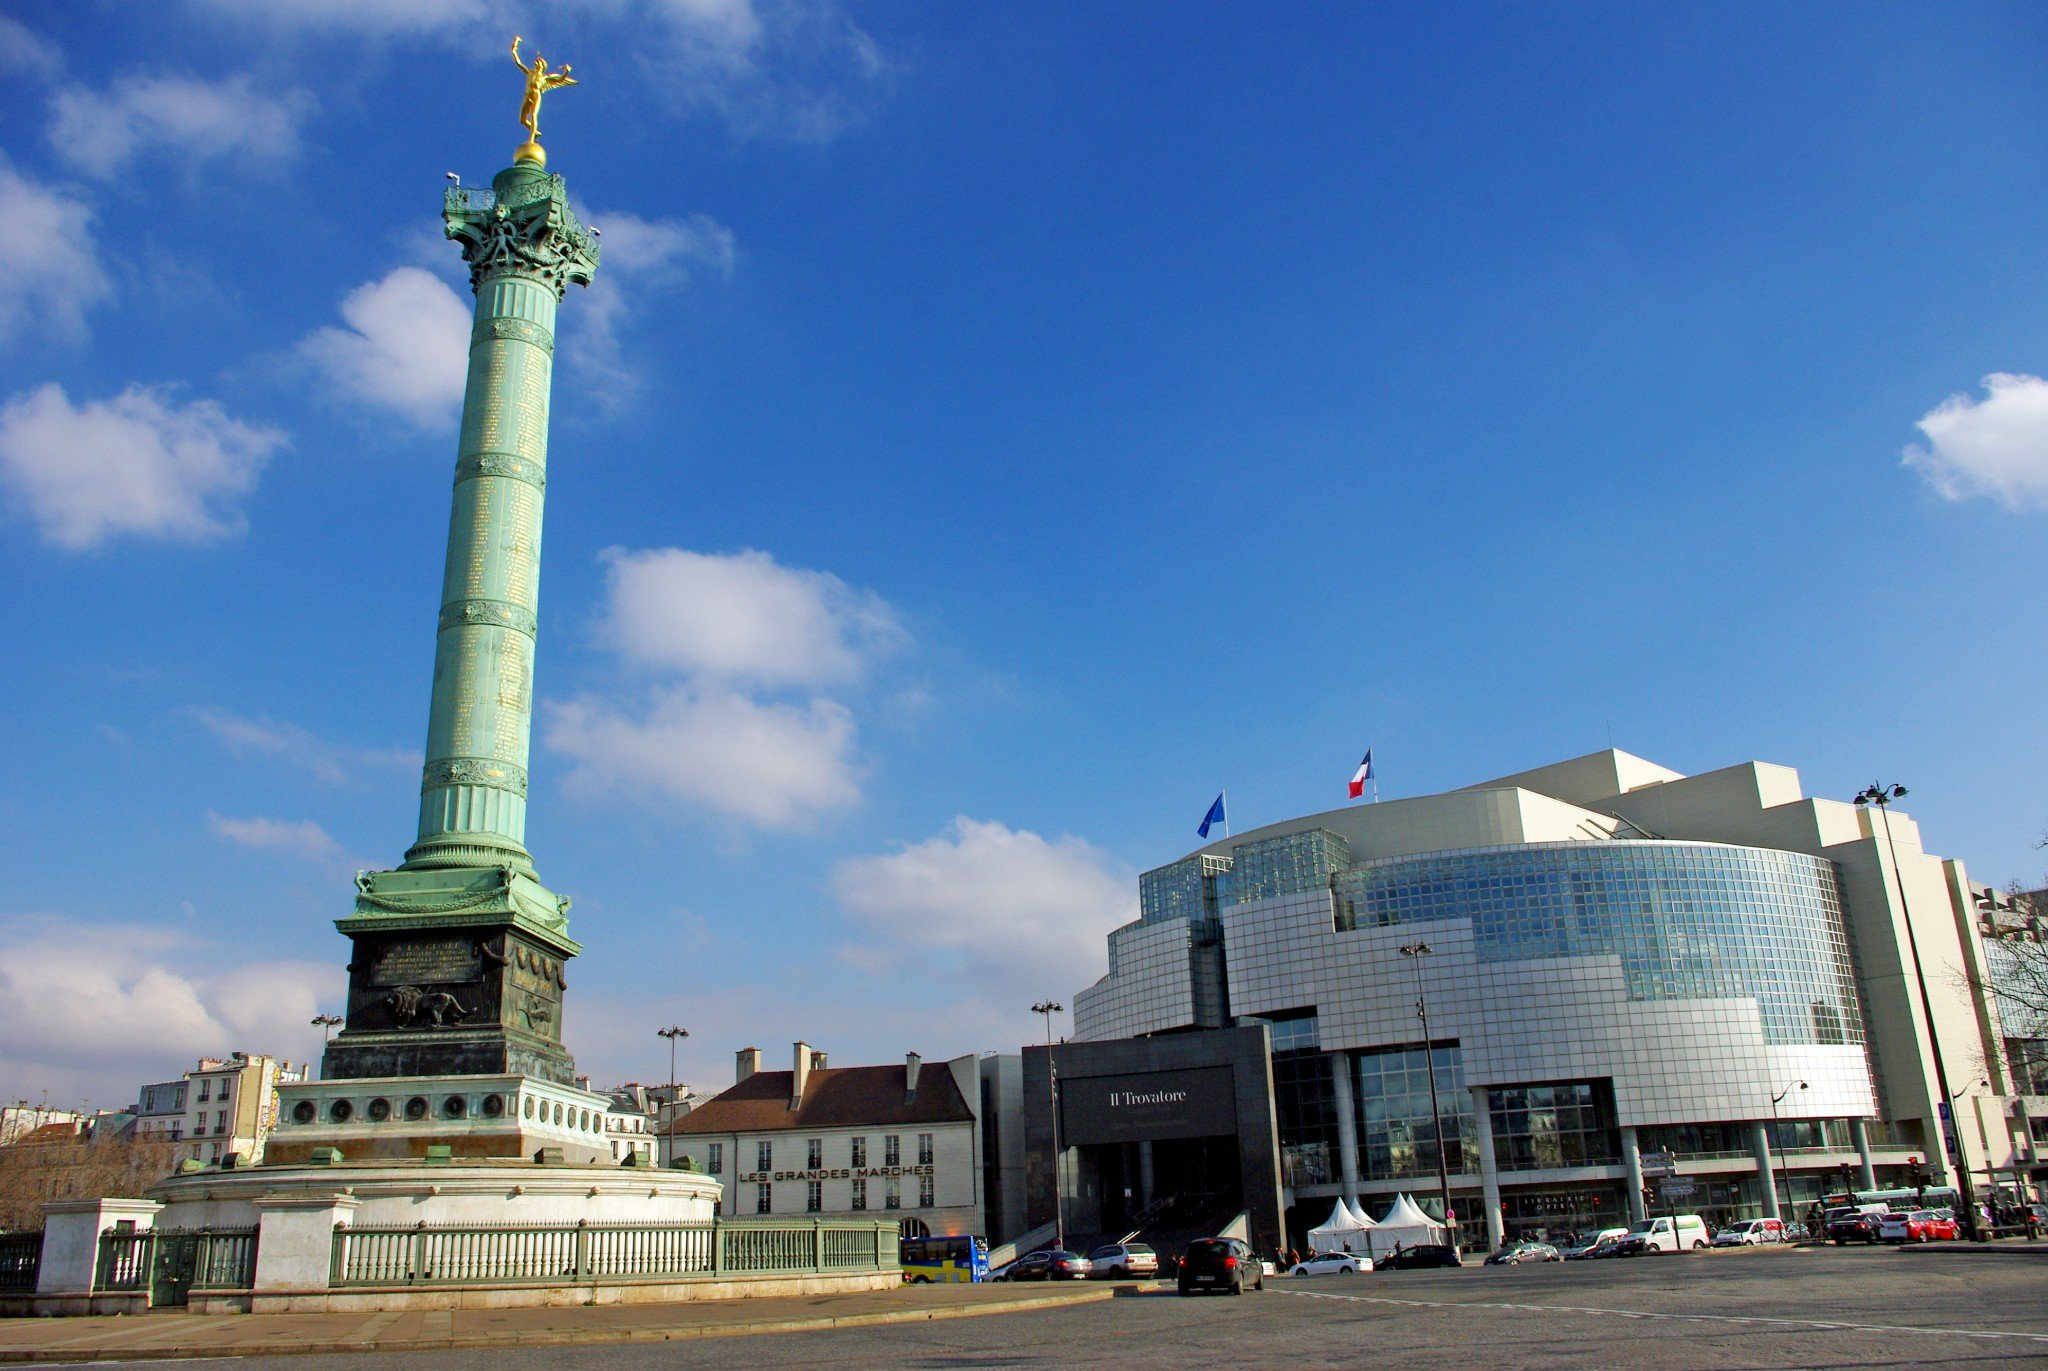 The monuments of Place de la Bastille: the column and the opera house © French Moments